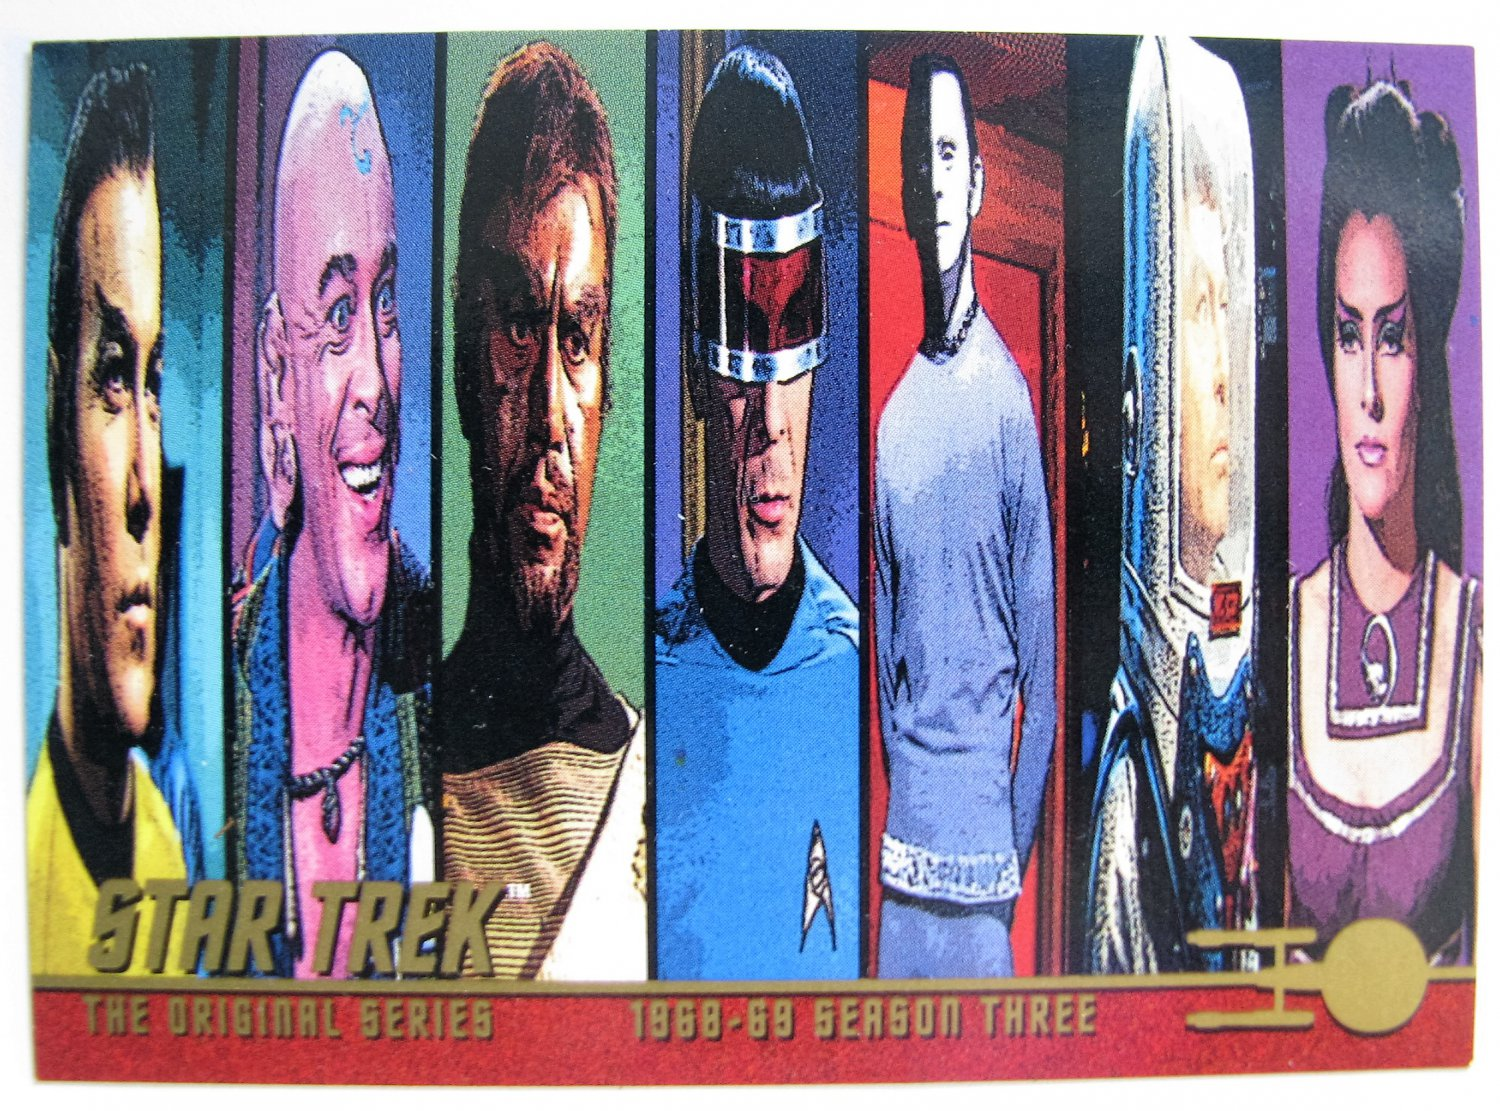 1999 Fleer Skybox Star Trek: The Original Series Season 3 Unnumbered Promo Card